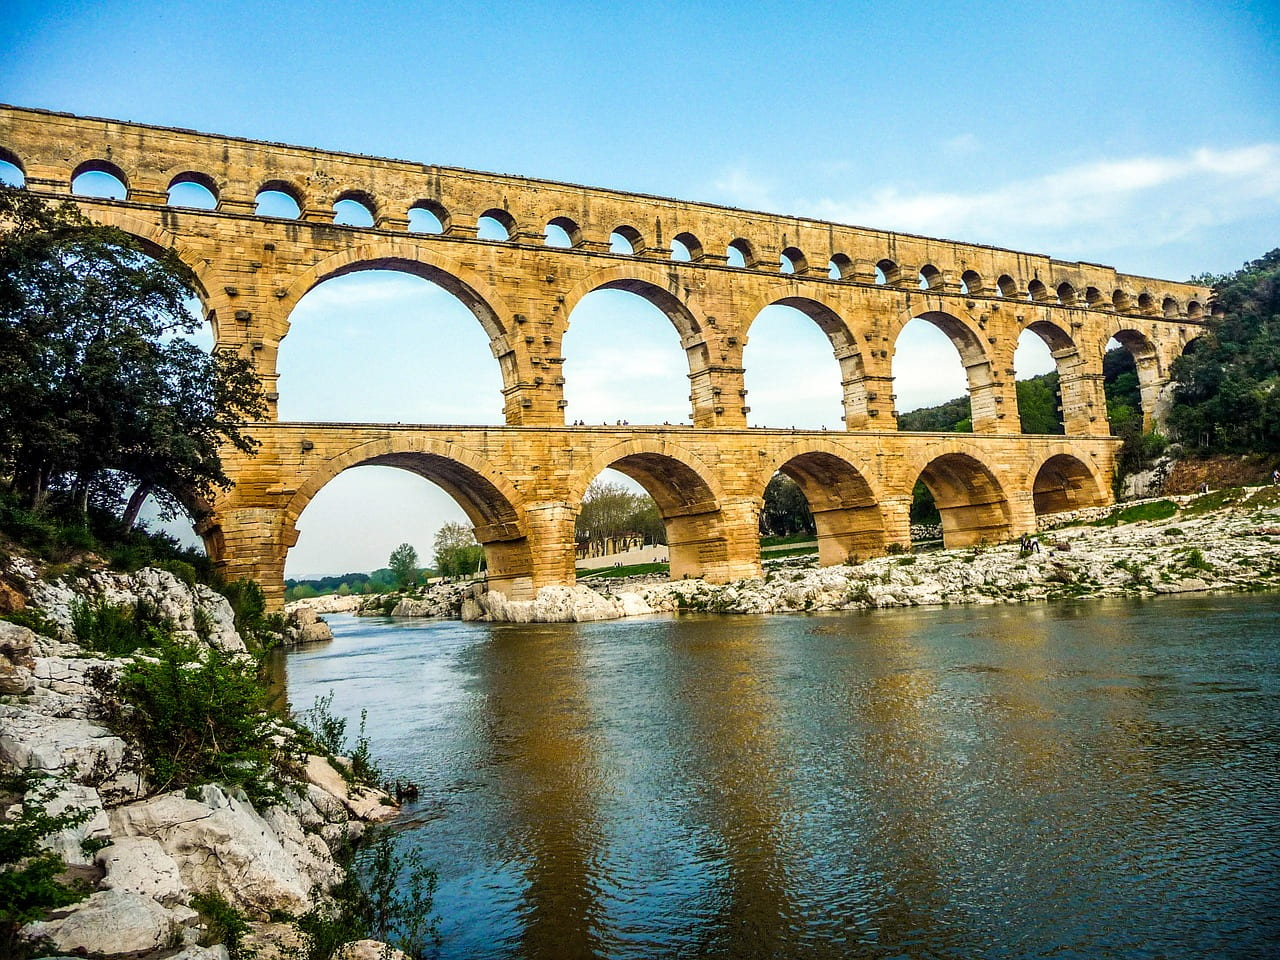 A Roman aqueduct over a river in Southern France